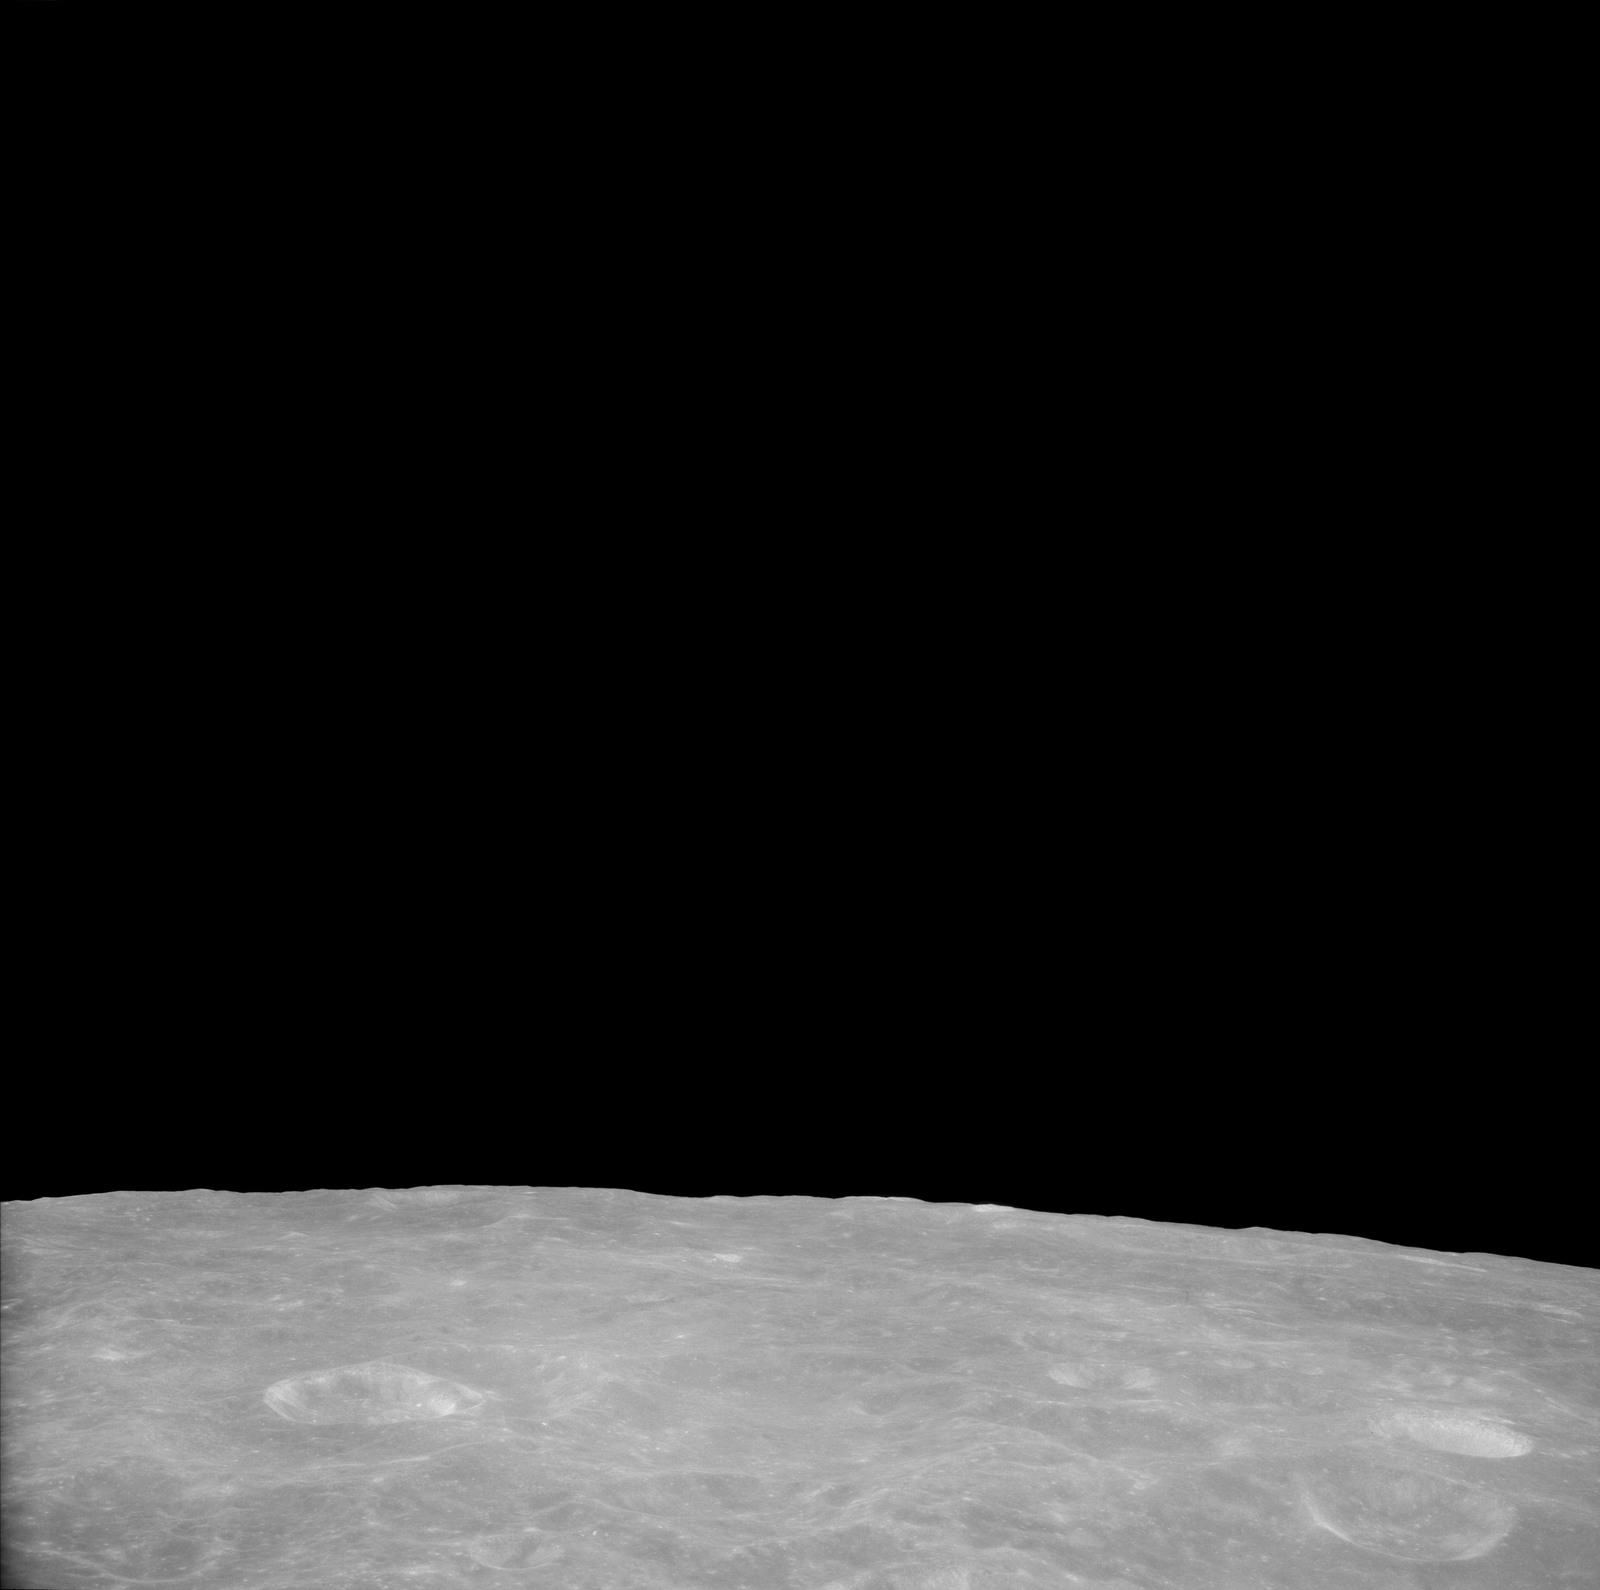 AS11-41-6000 - Apollo 11 - Apollo 11 Mission image - View of Moon, Crater 202